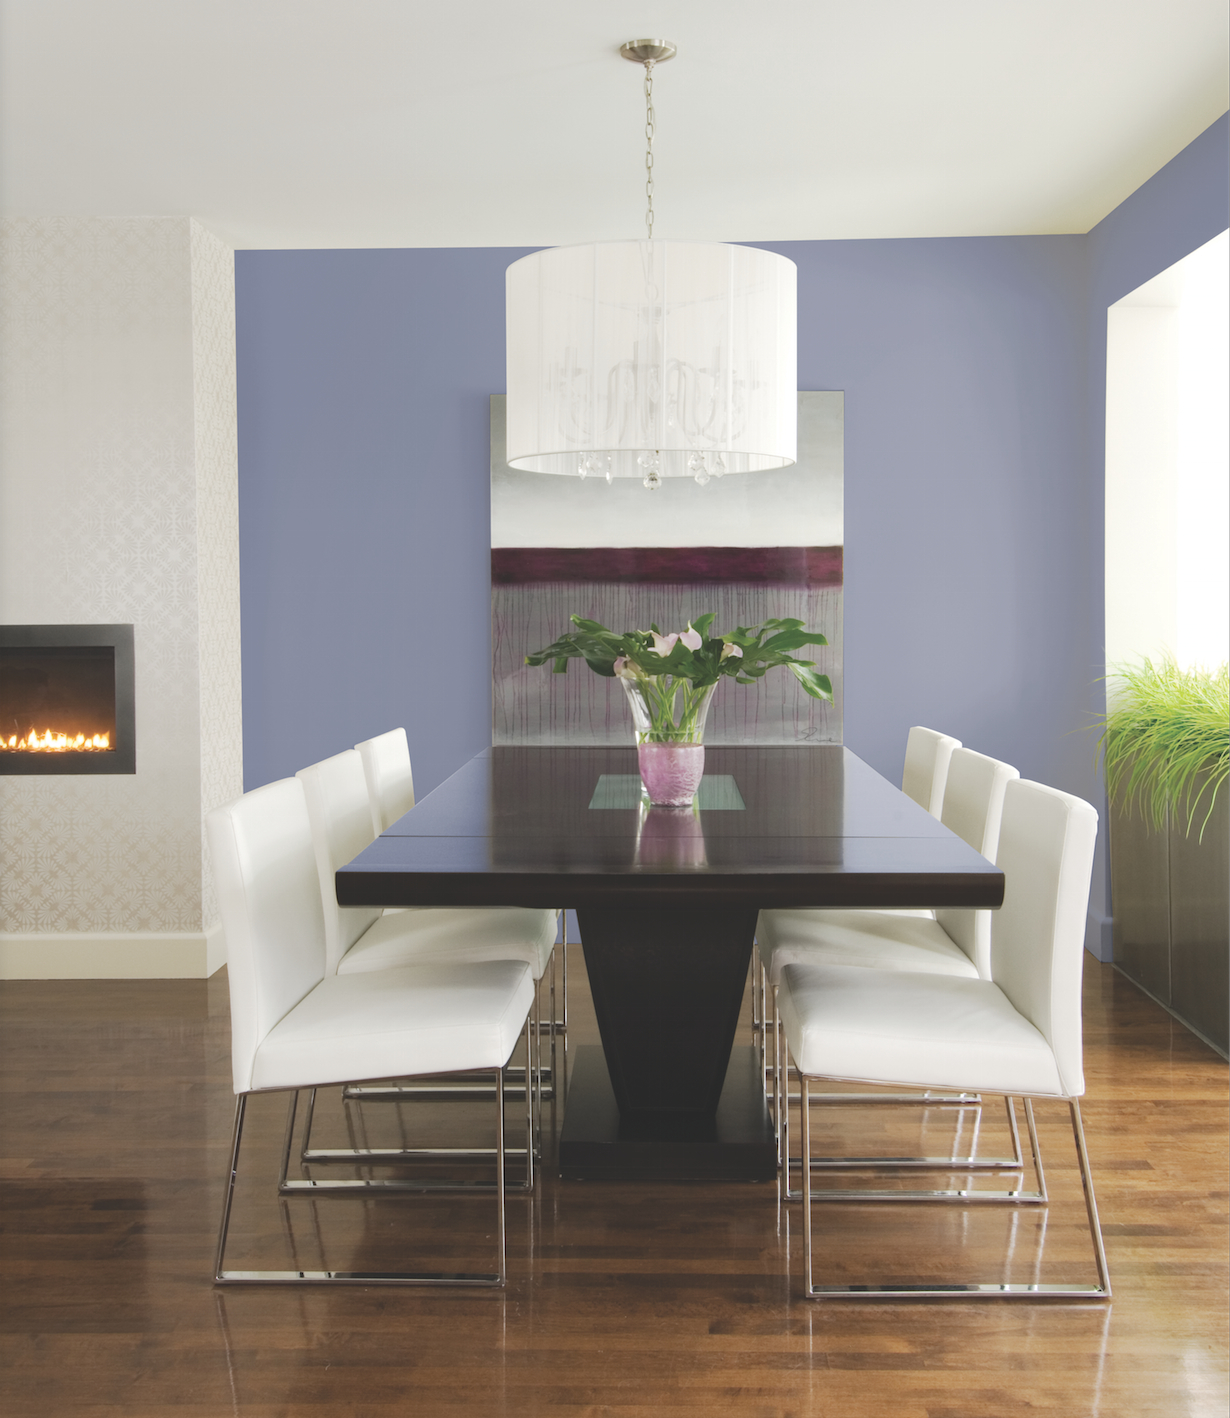 Simple White Themed Dining Room Design Ideas: 7 Easy Ways To Decorate With Lilac